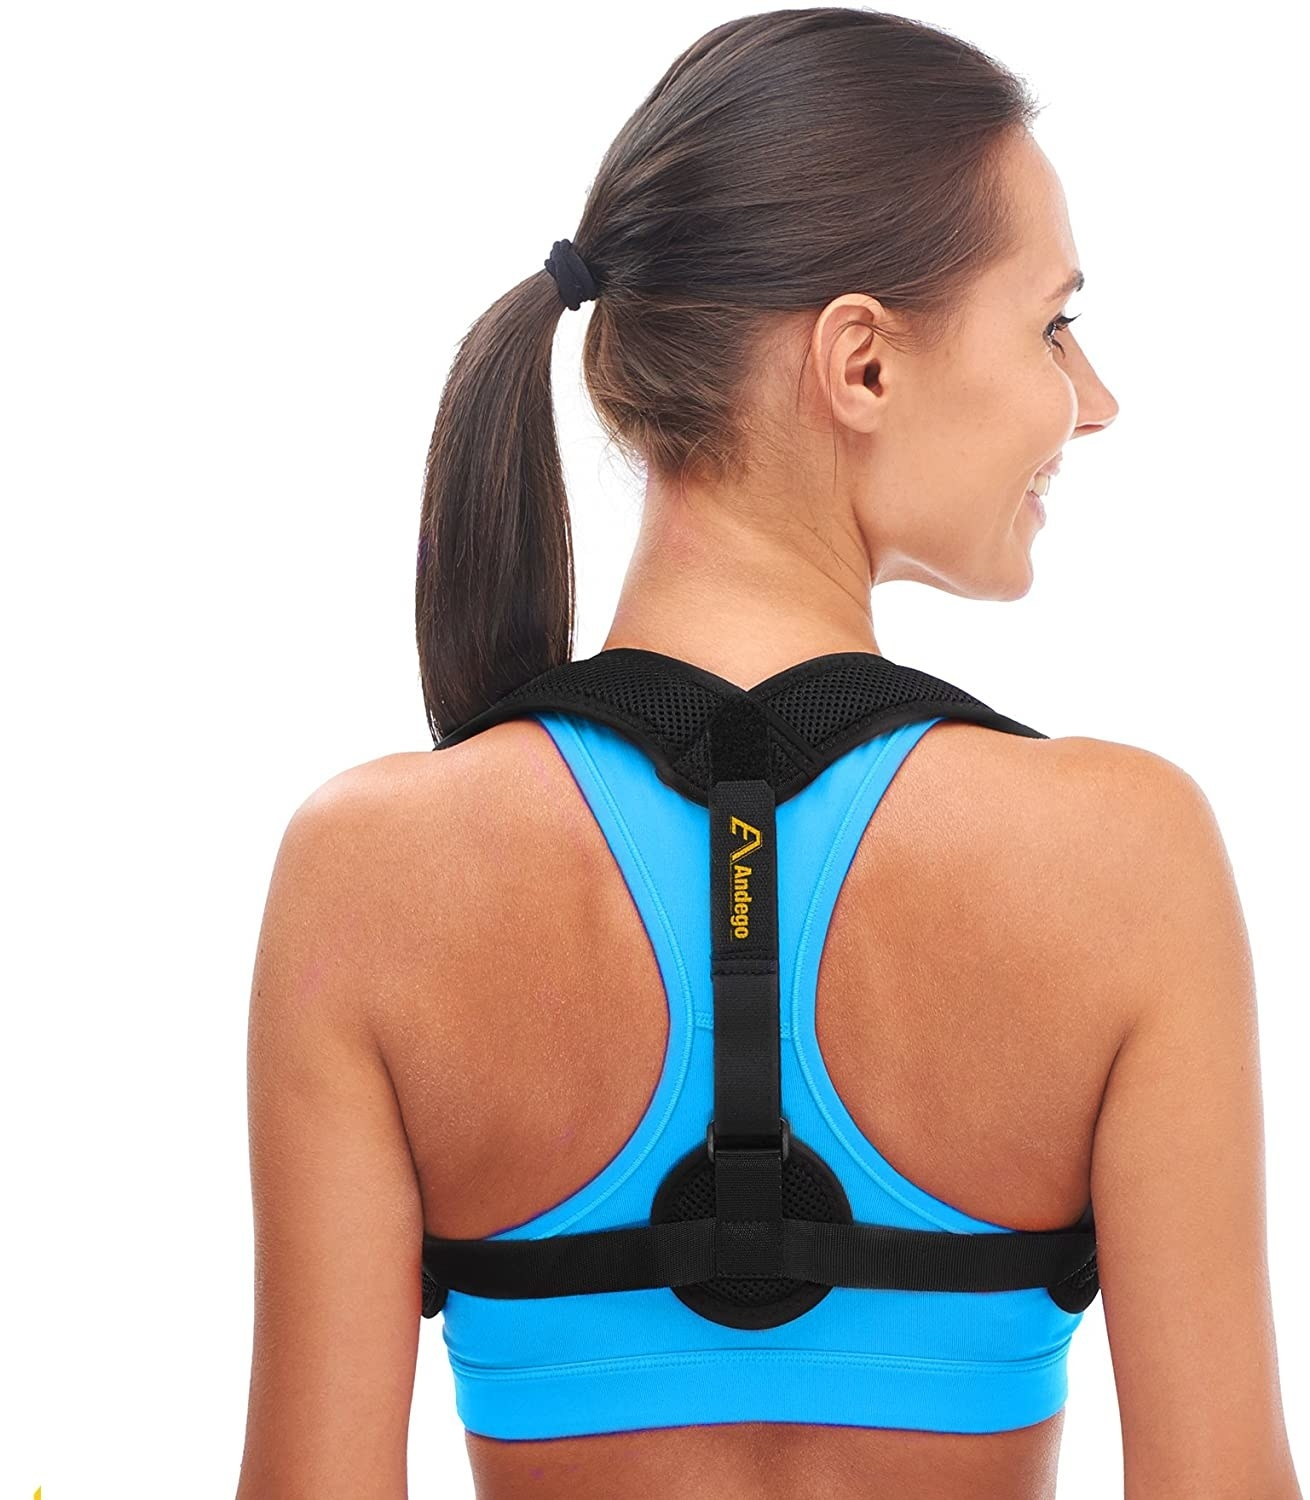 A person is wearing a posture corrector pictured from the back